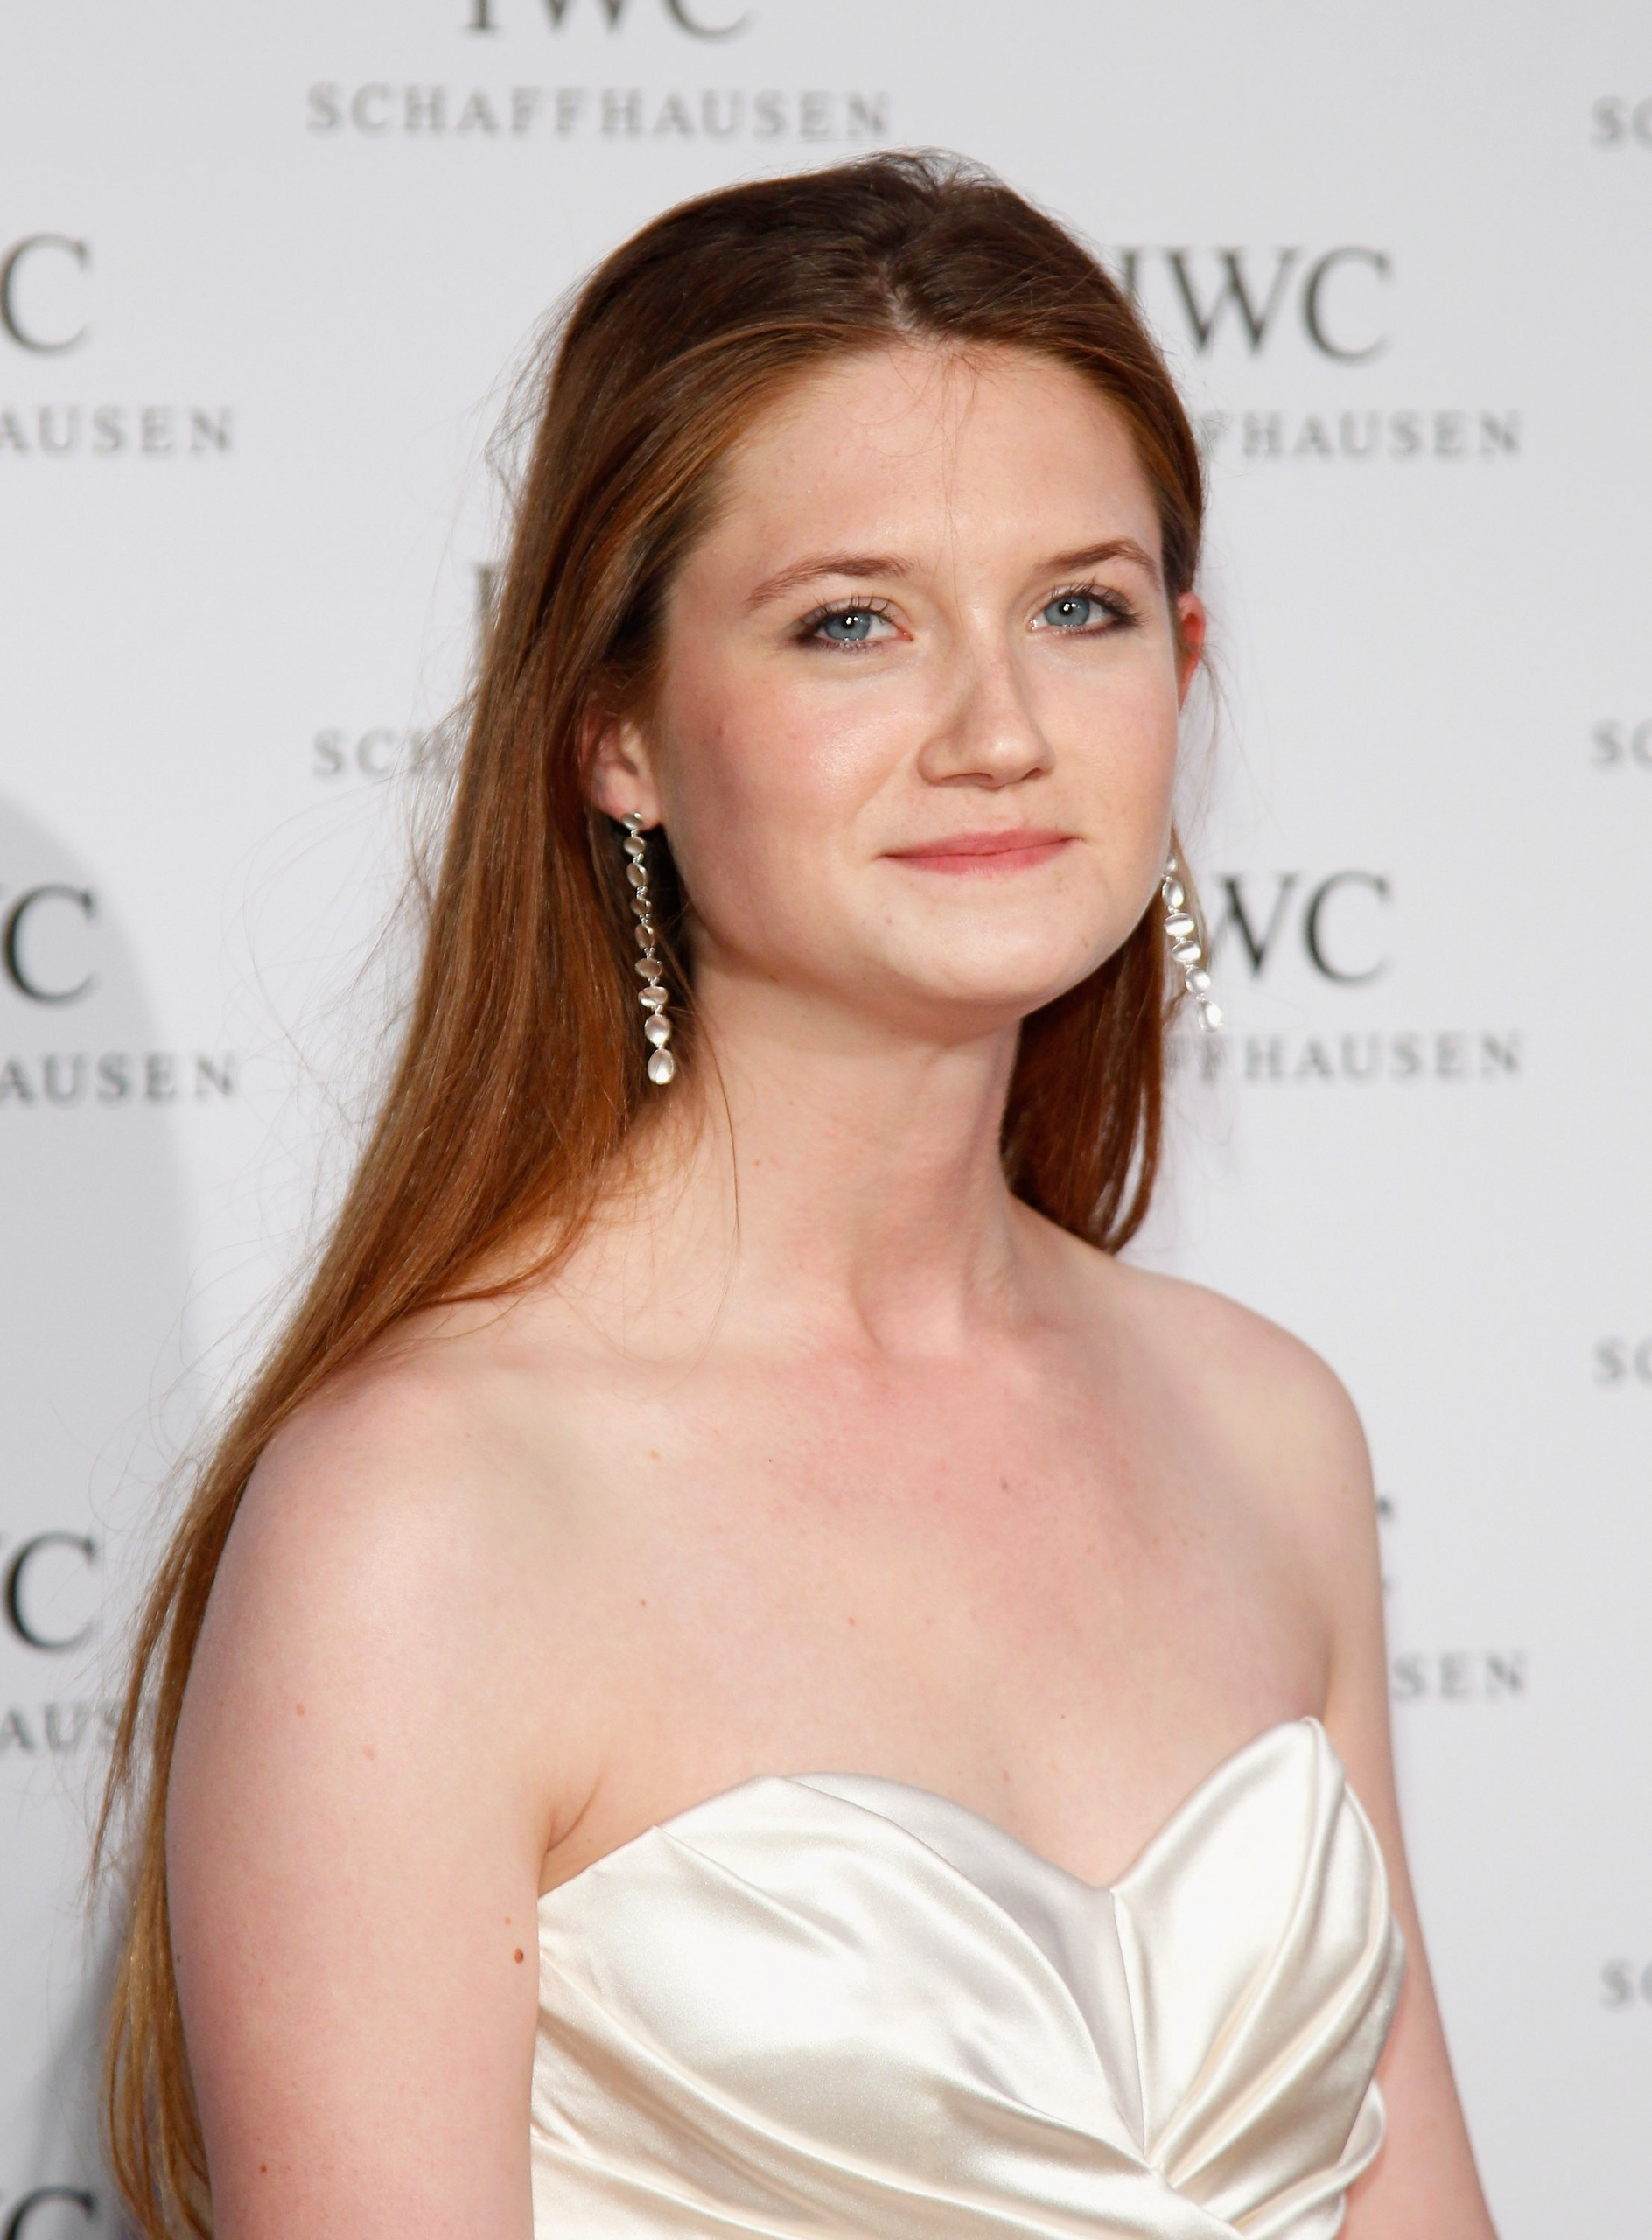 IWC Filmmakers Dinner - May 21, 2012 - HQ